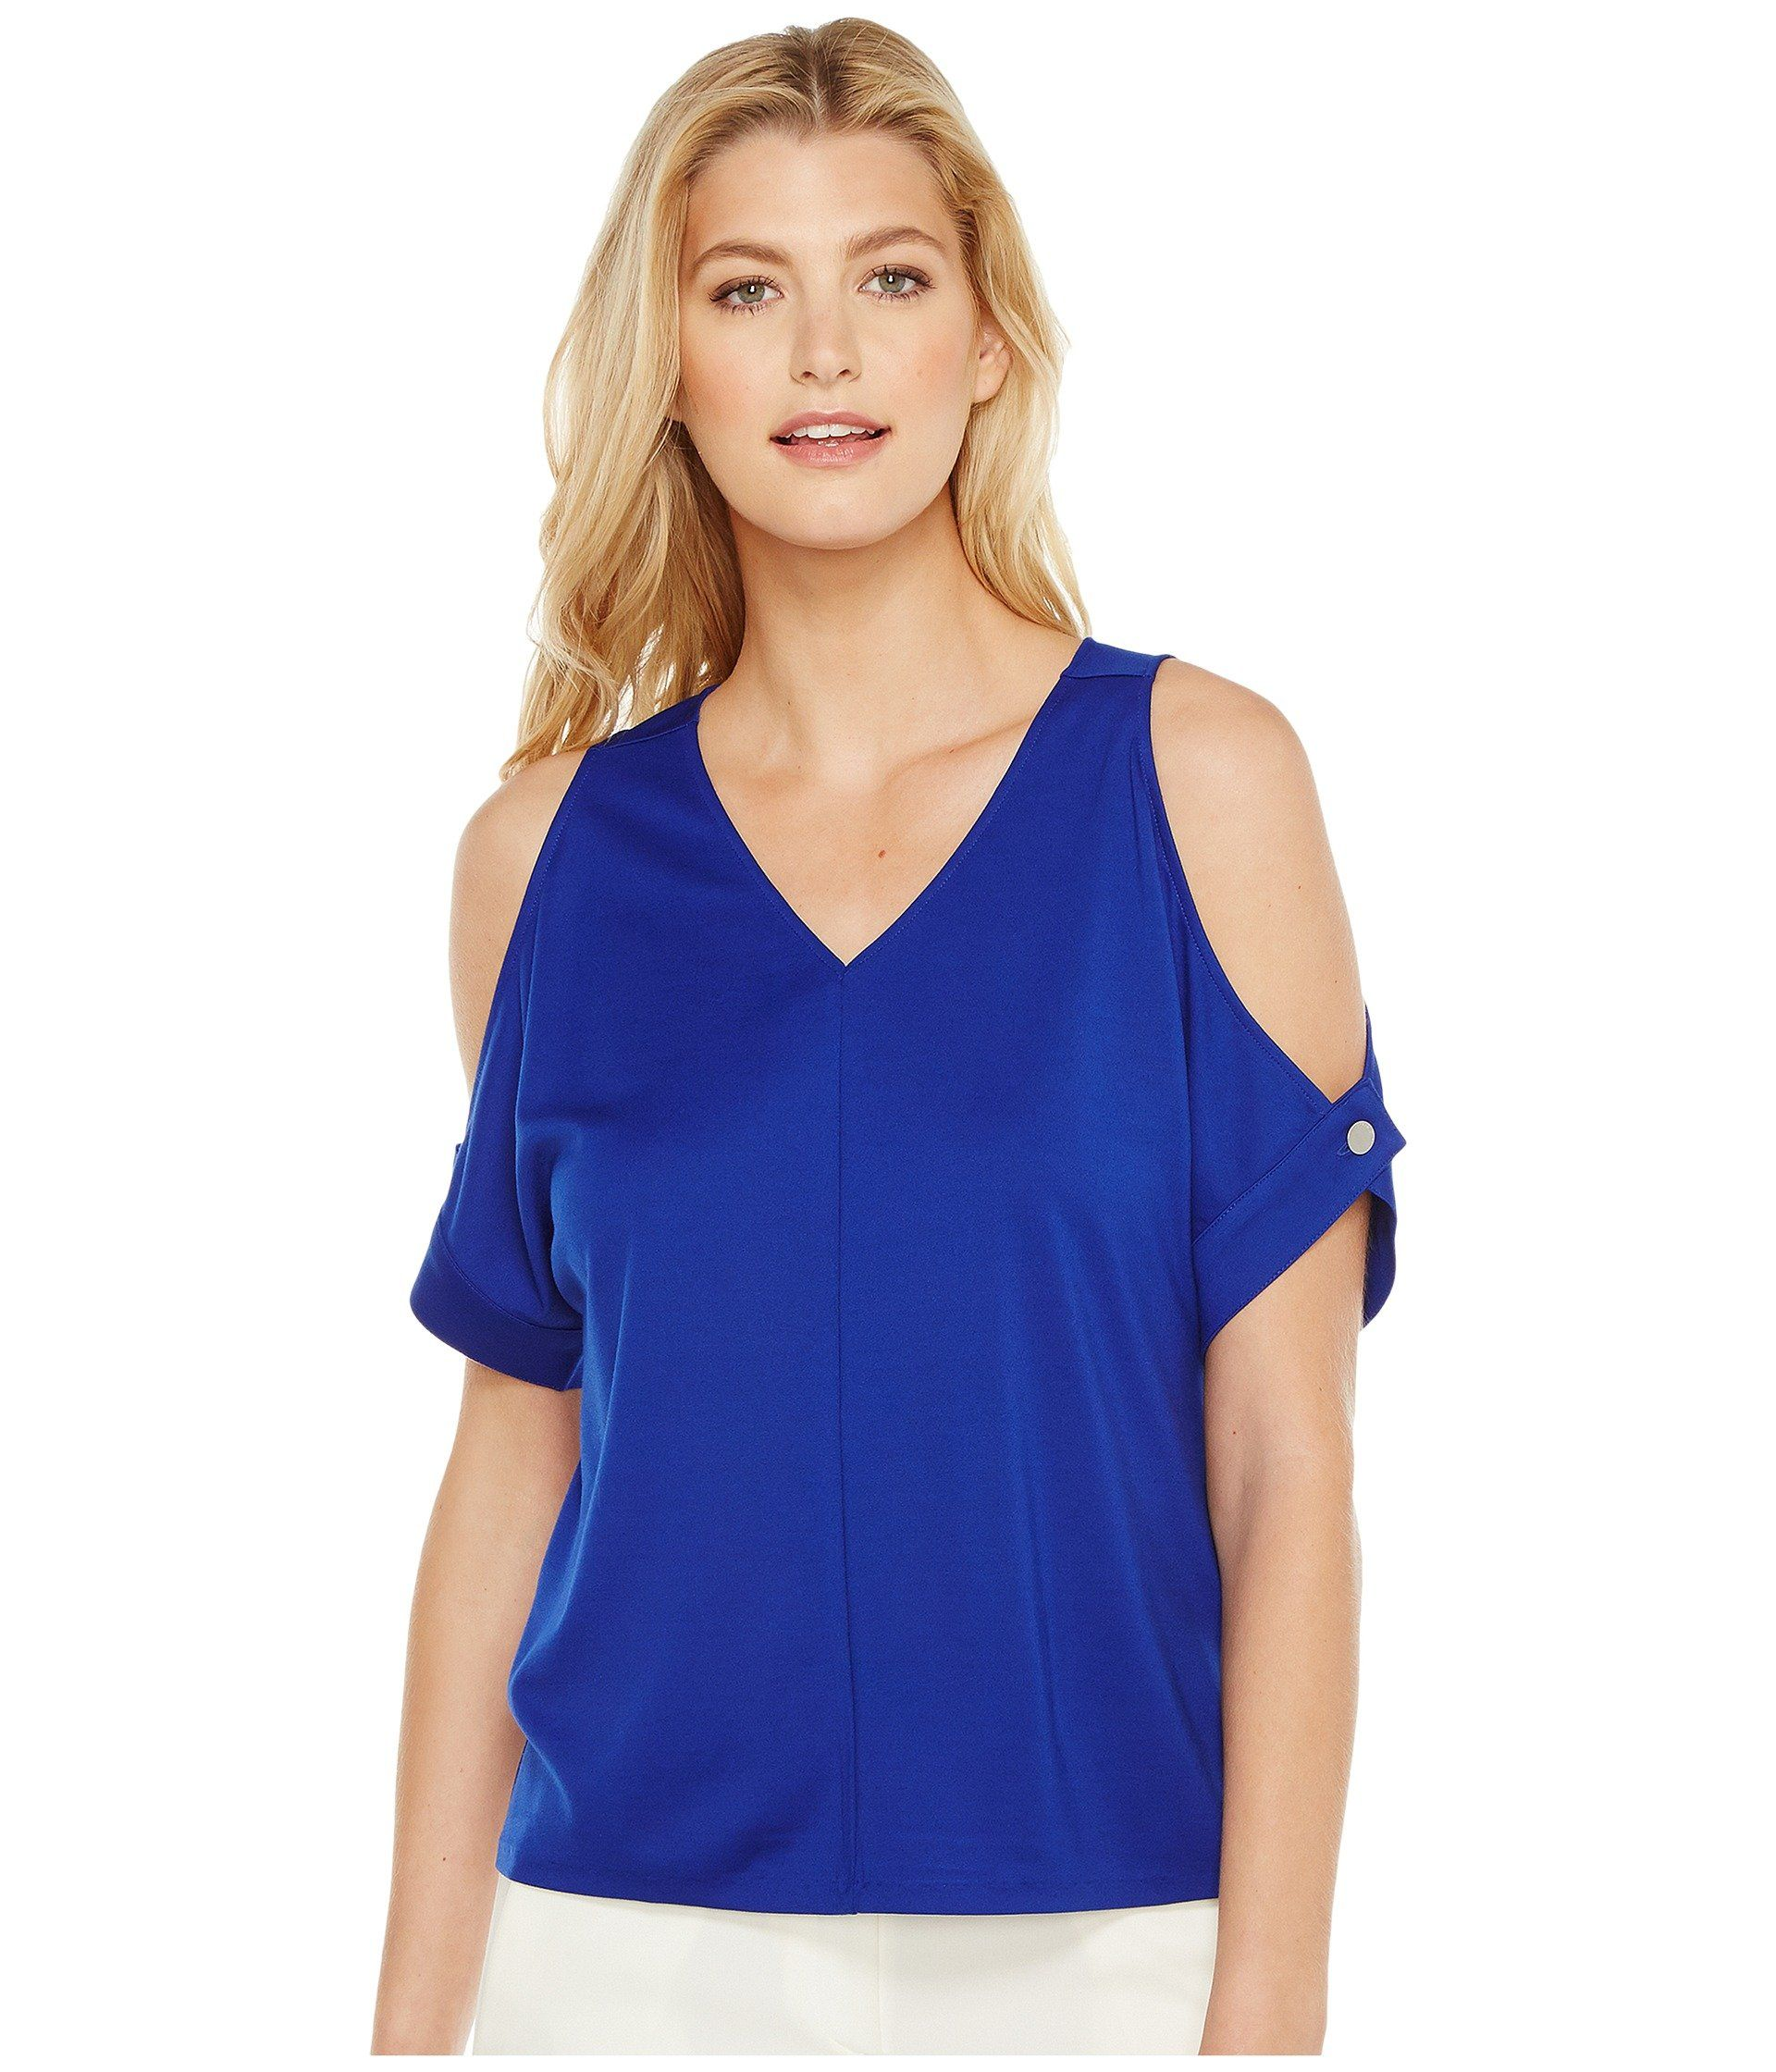 Women Shirts and Blouses POTO Women Ladies V-Neck Casual T-Shirt Sequin Short Sleeve Blouse Summer Tunic Tops